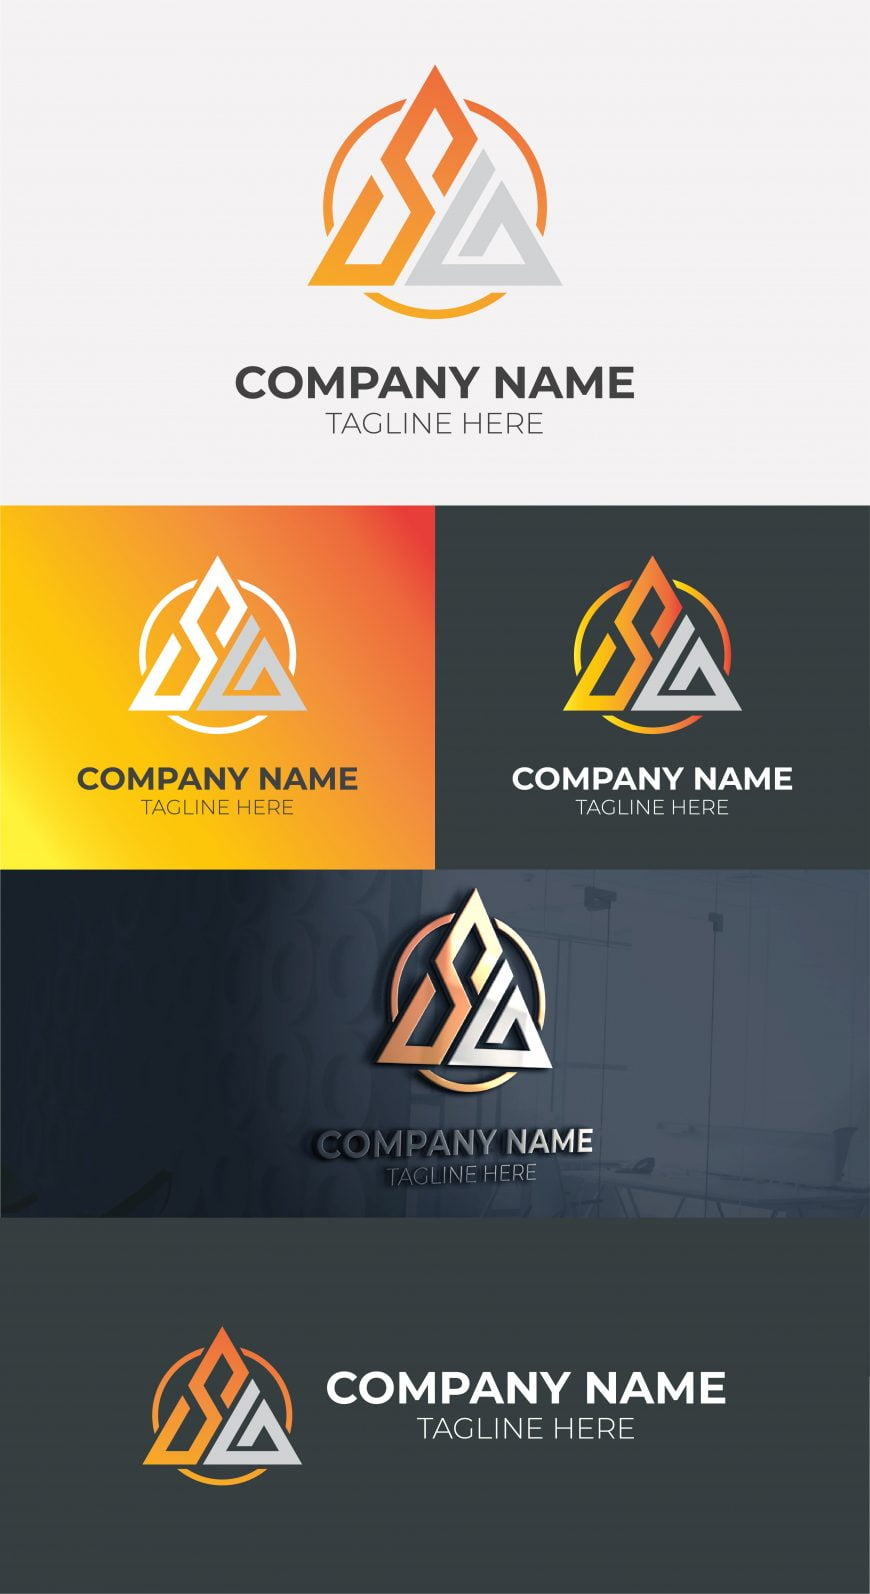 SG-LETTER-LOGO-FREE-TEMPLATE-scaled